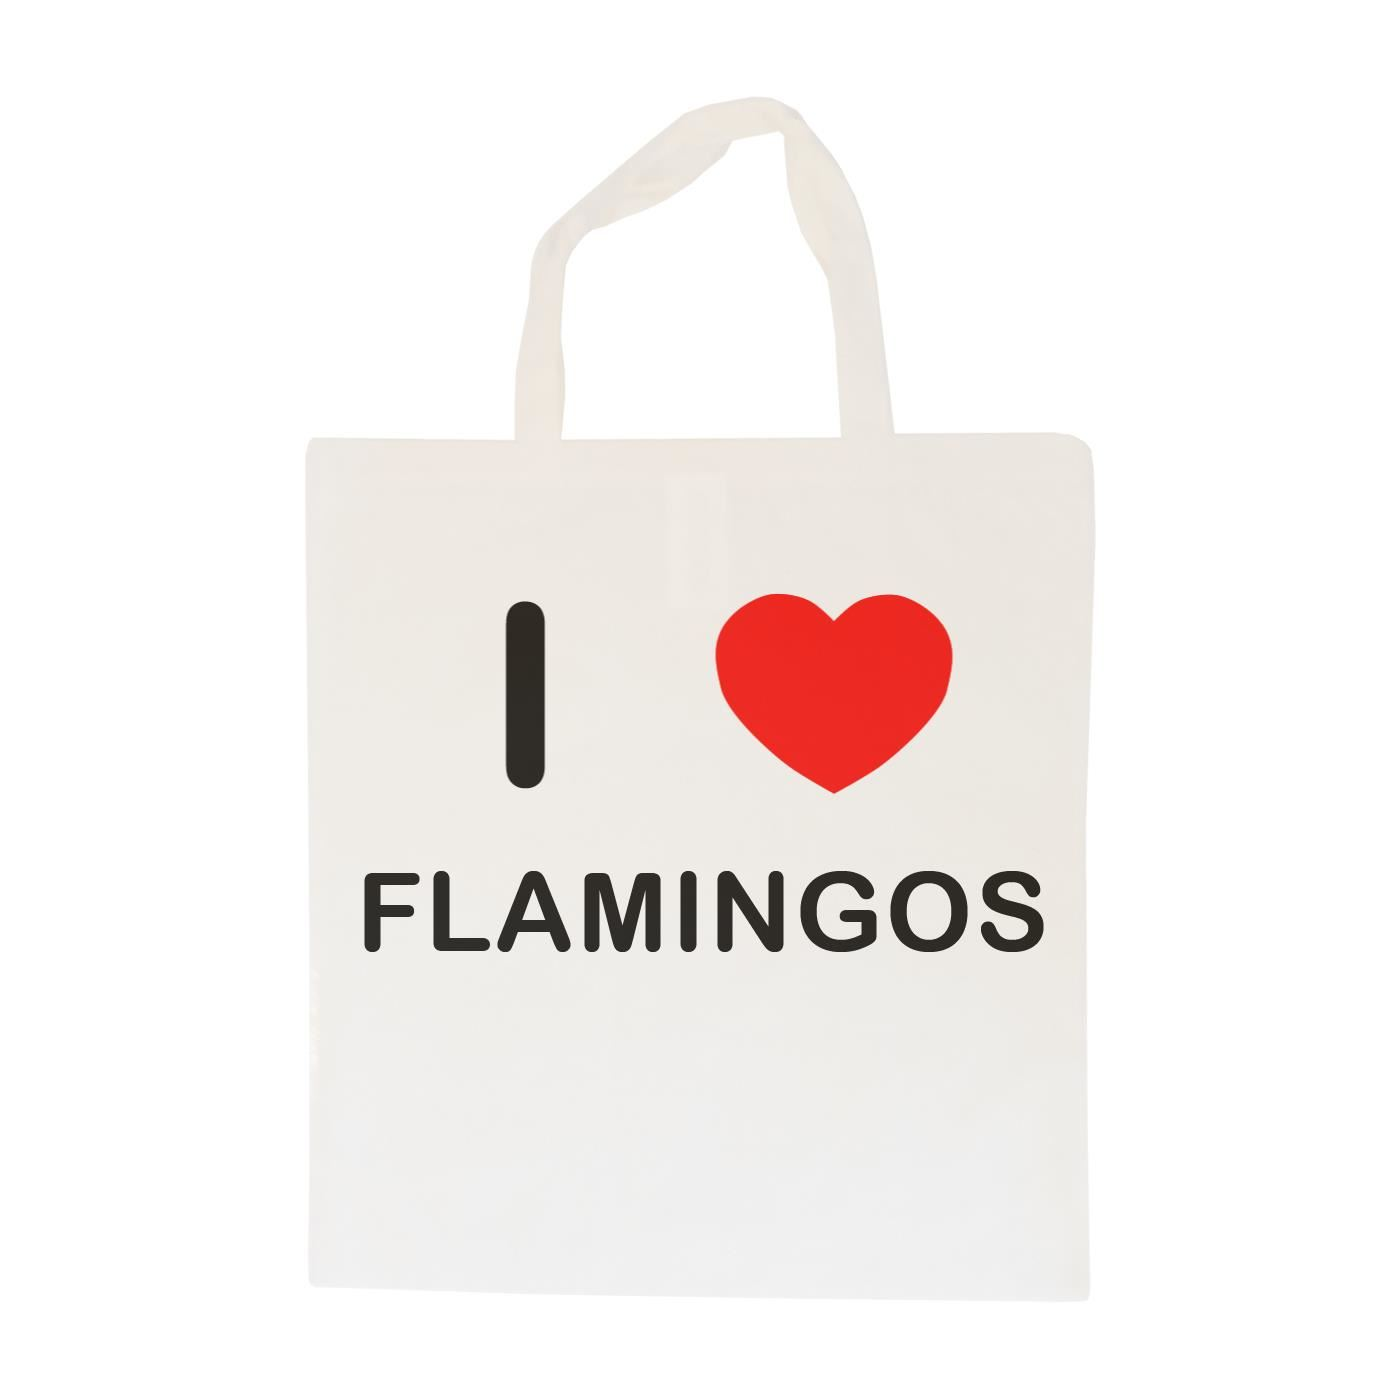 I Love Flamingos - Cotton Bag | Size choice Tote, Shopper or Sling